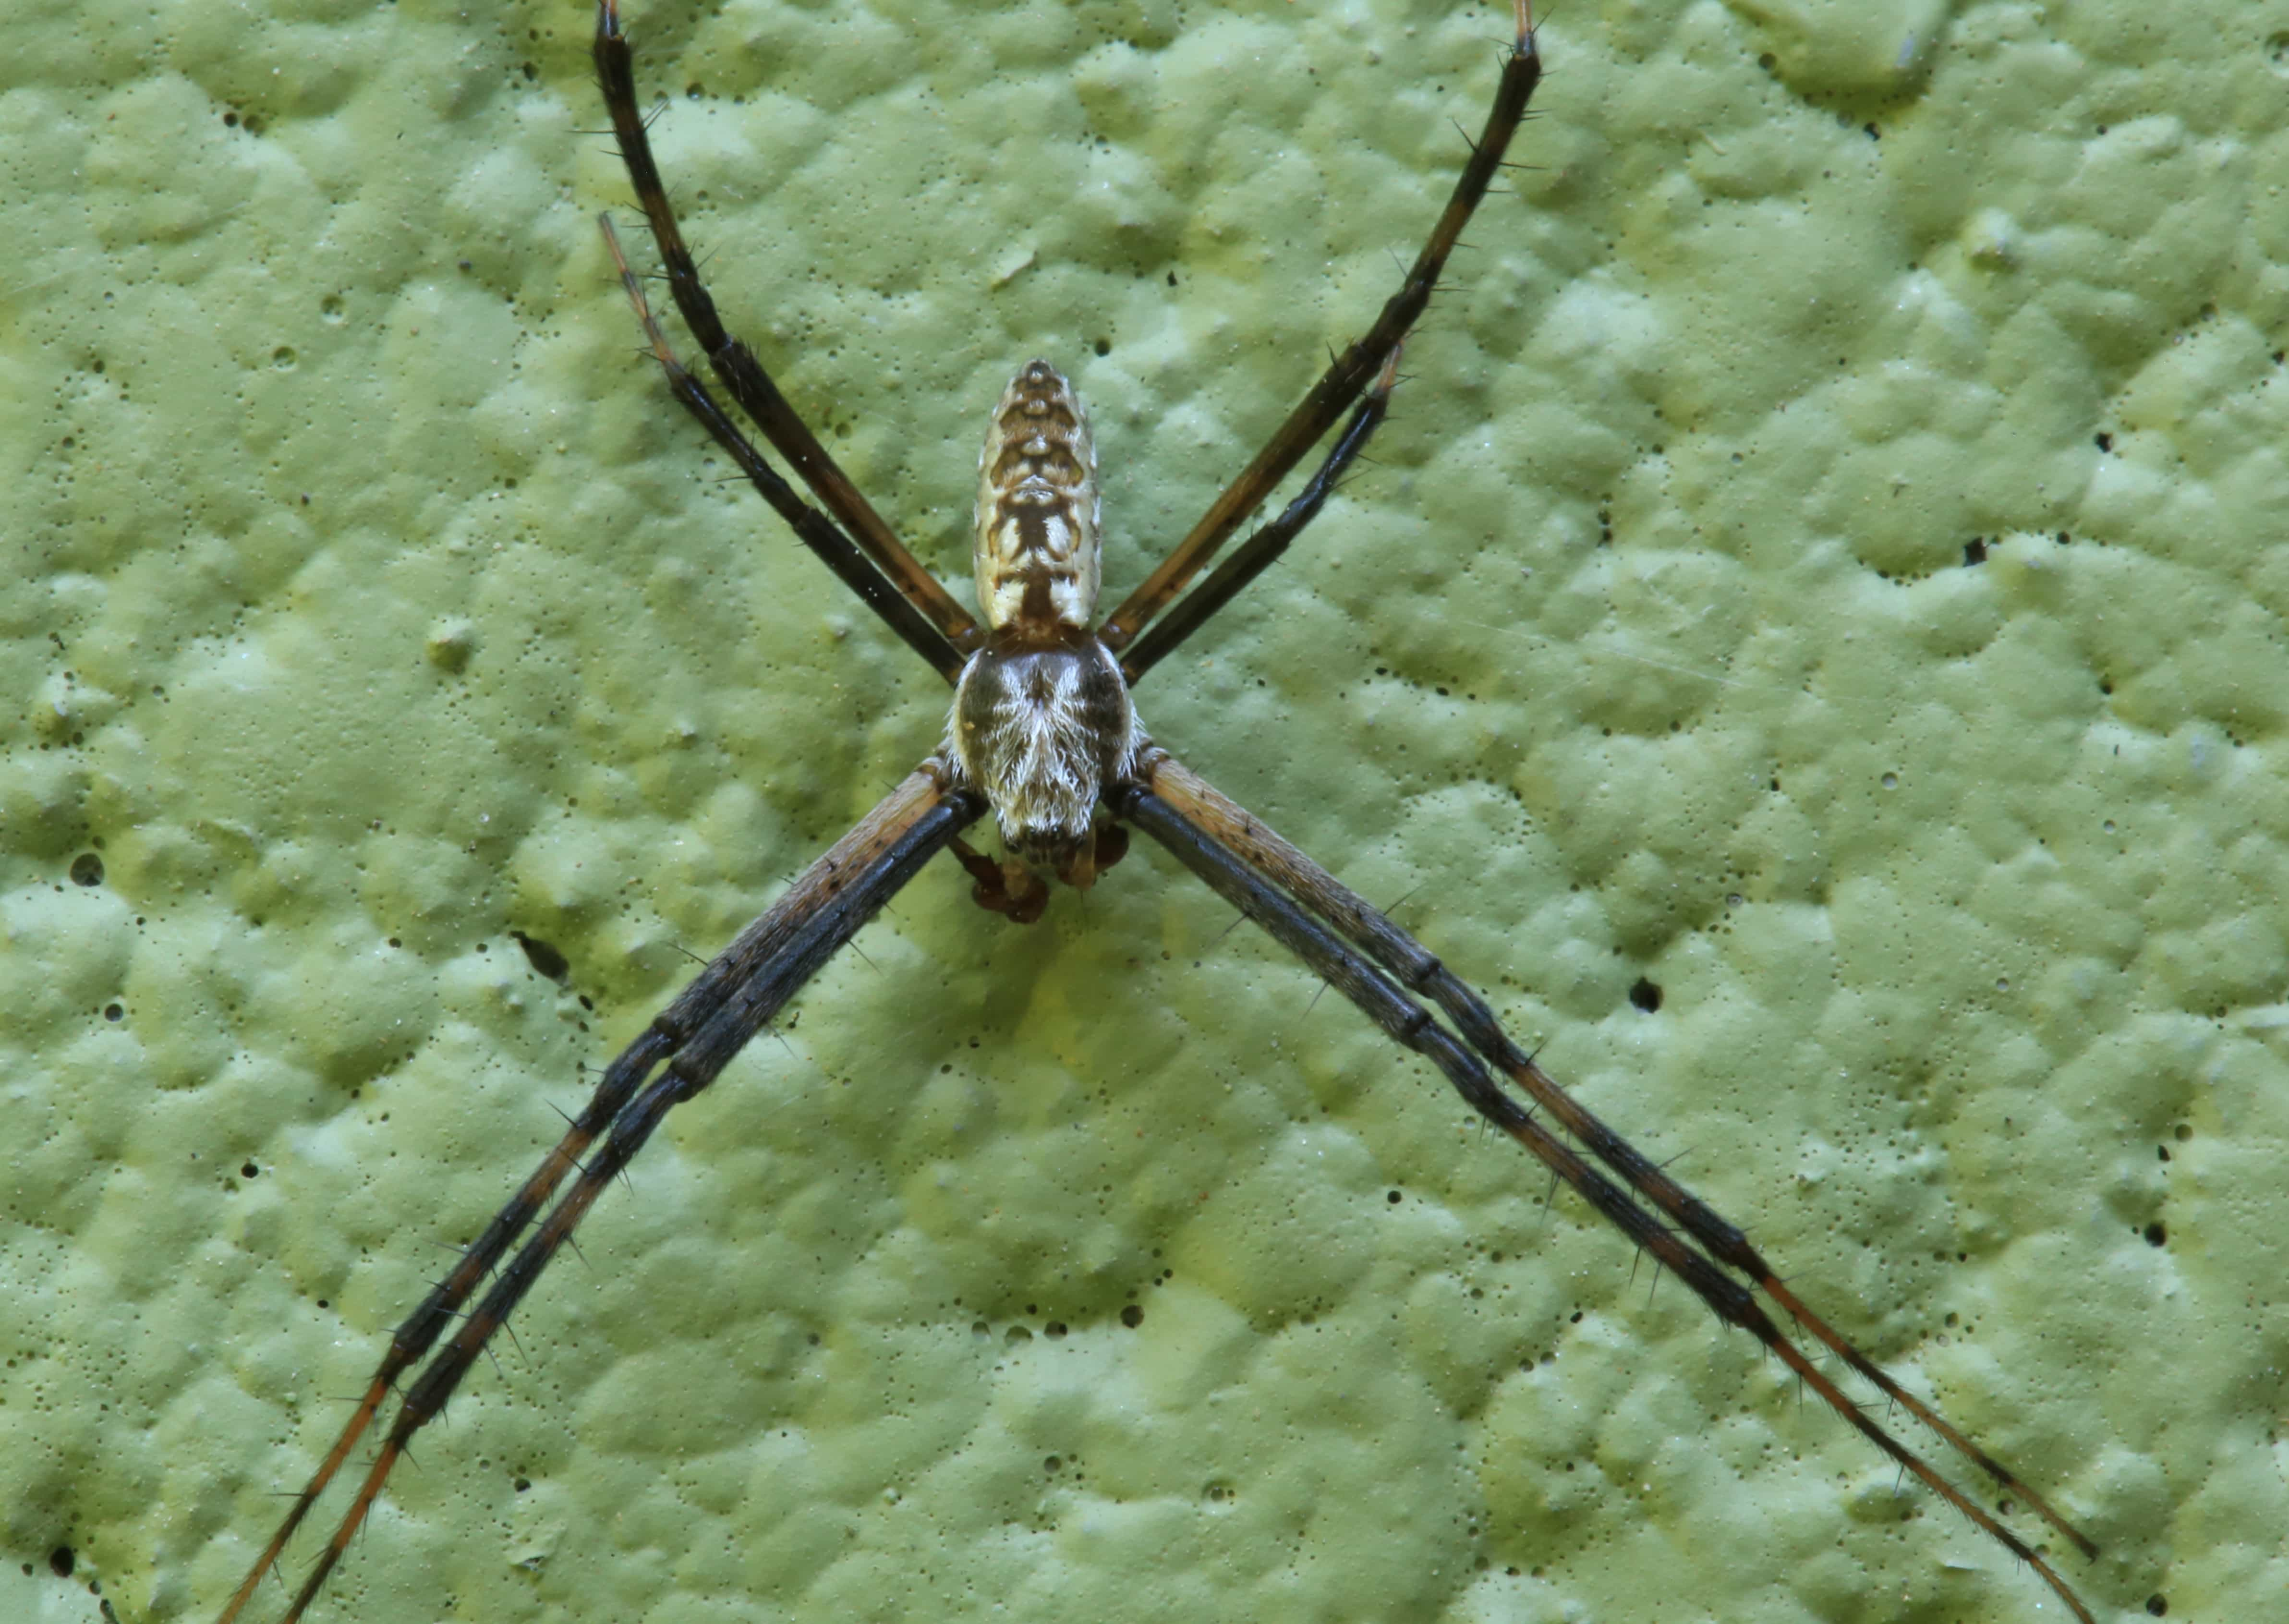 Picture of Argiope aurantia (Black and Yellow Garden Spider) - Male - Dorsal